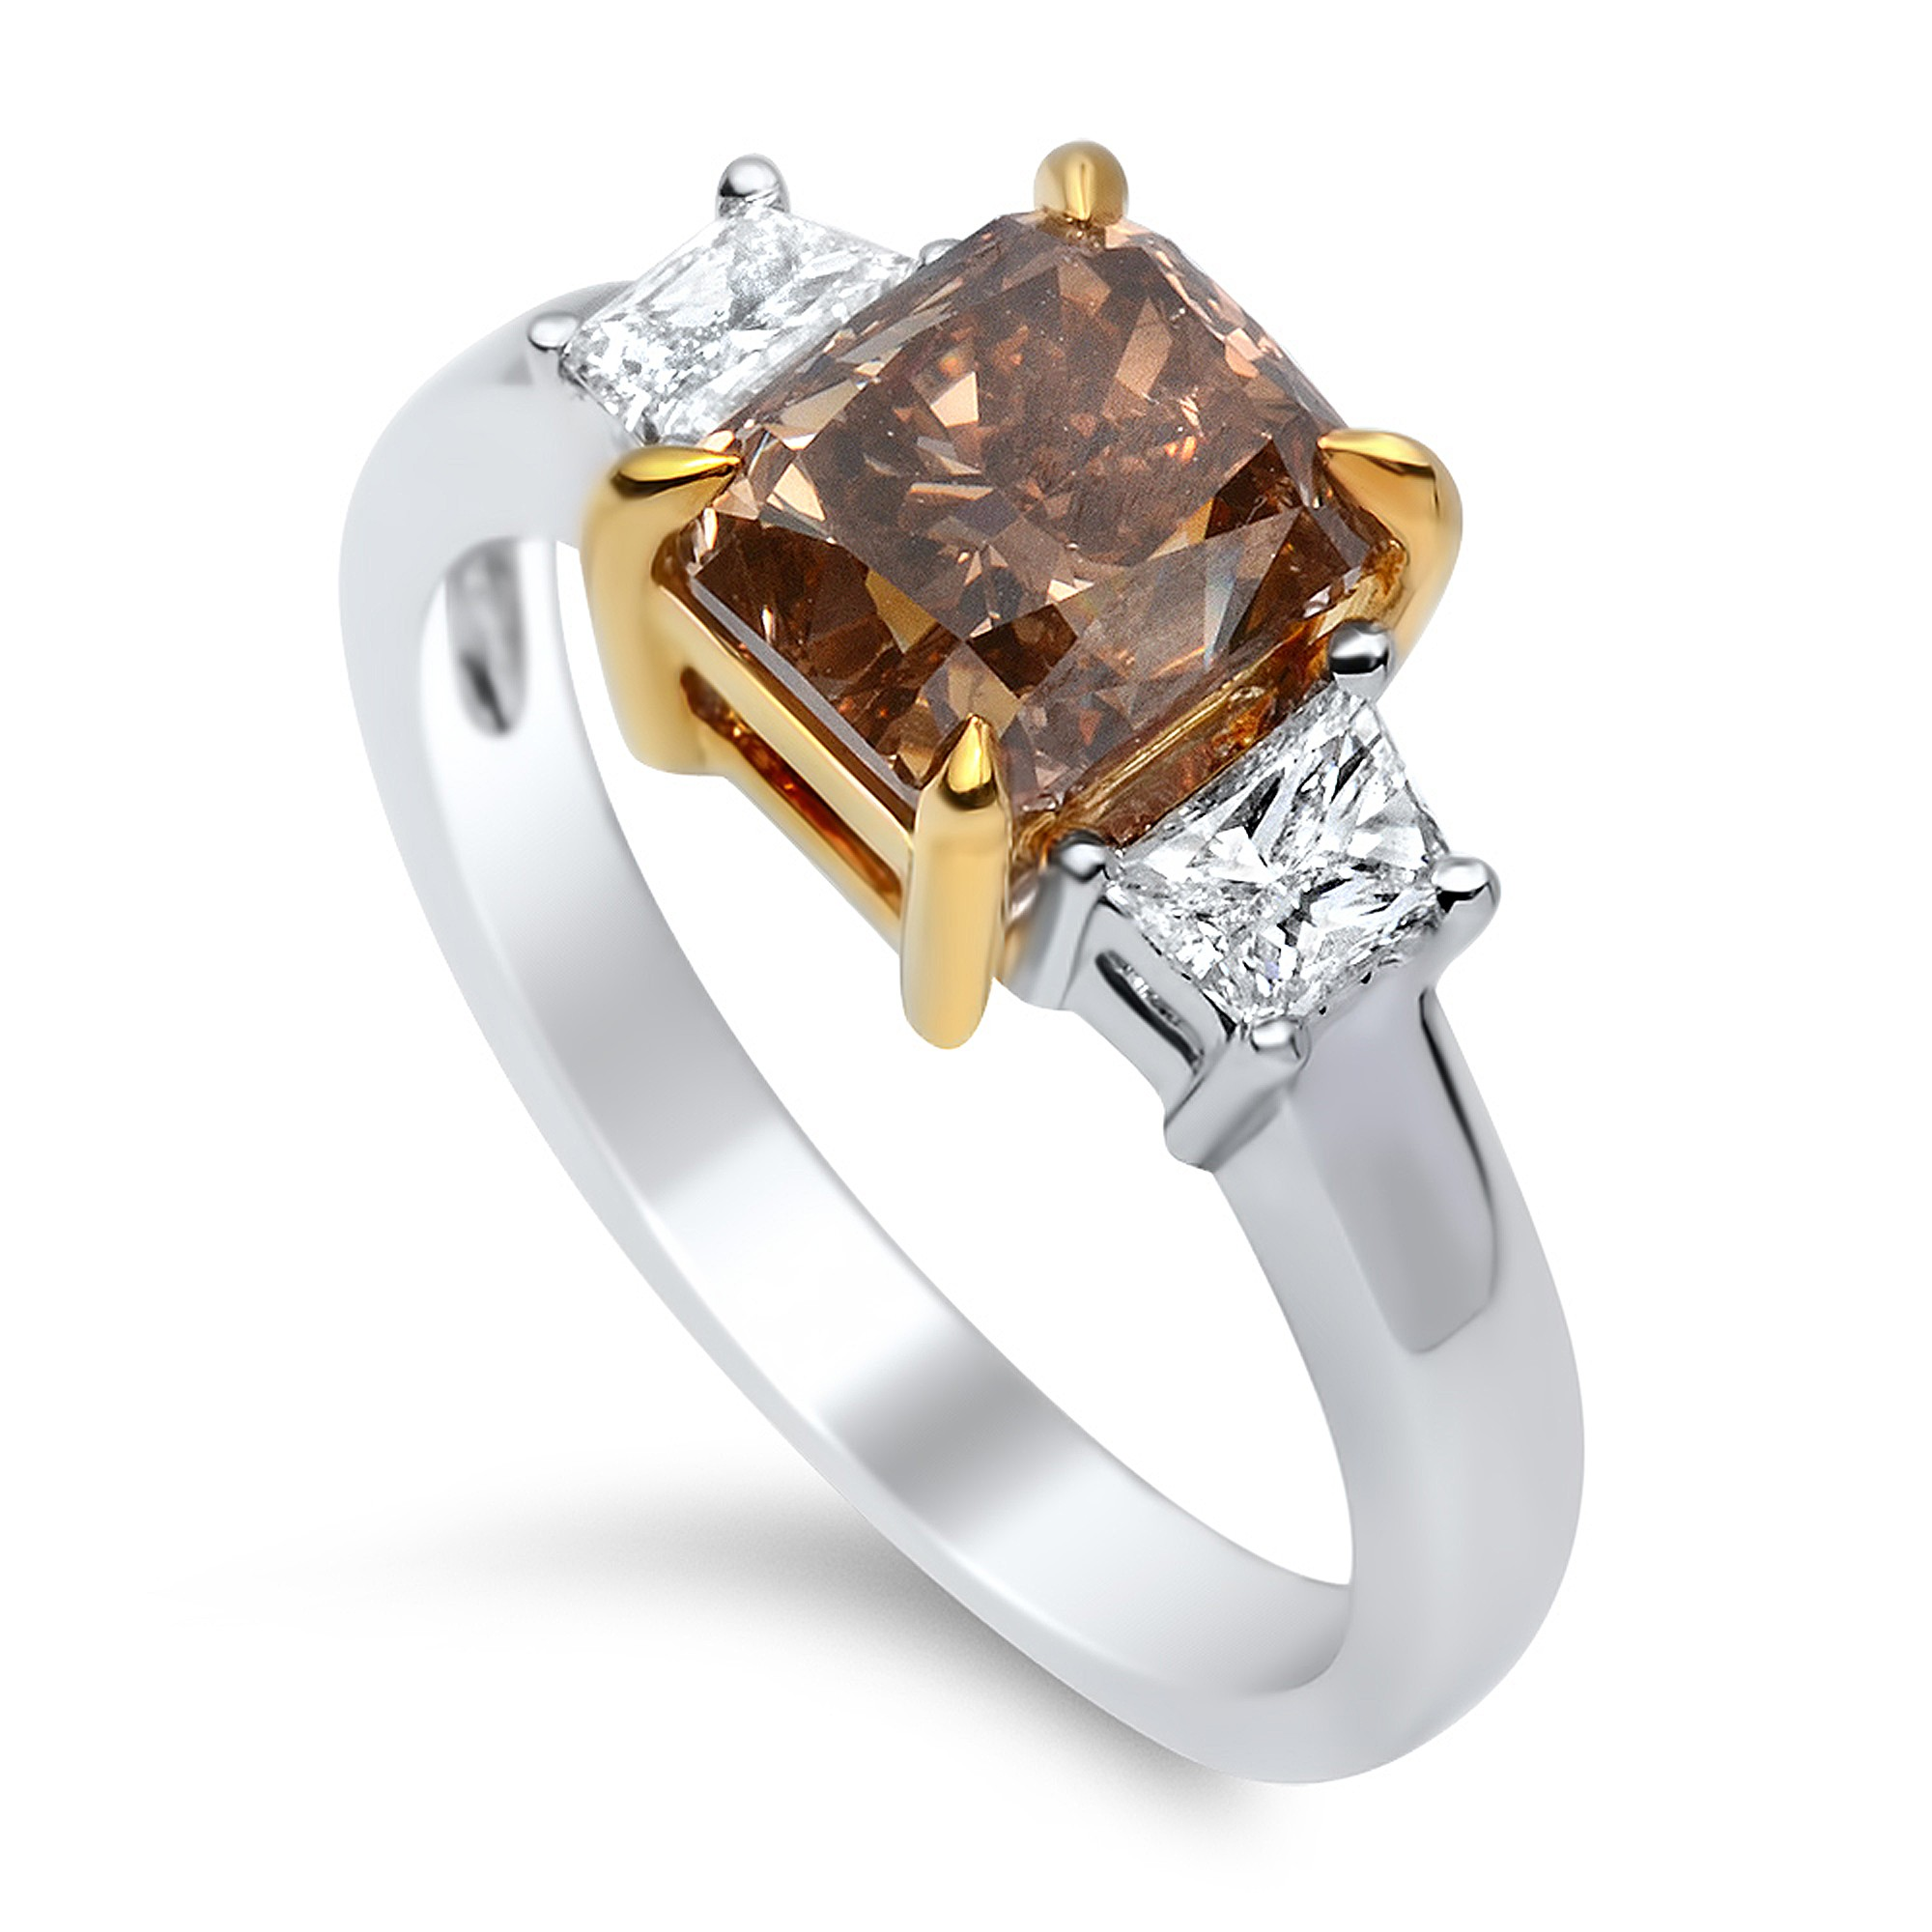 2.72 Carat Fancy Dark Orangy Brown Diamond Ring in 18K Two-Tone Gold (1)